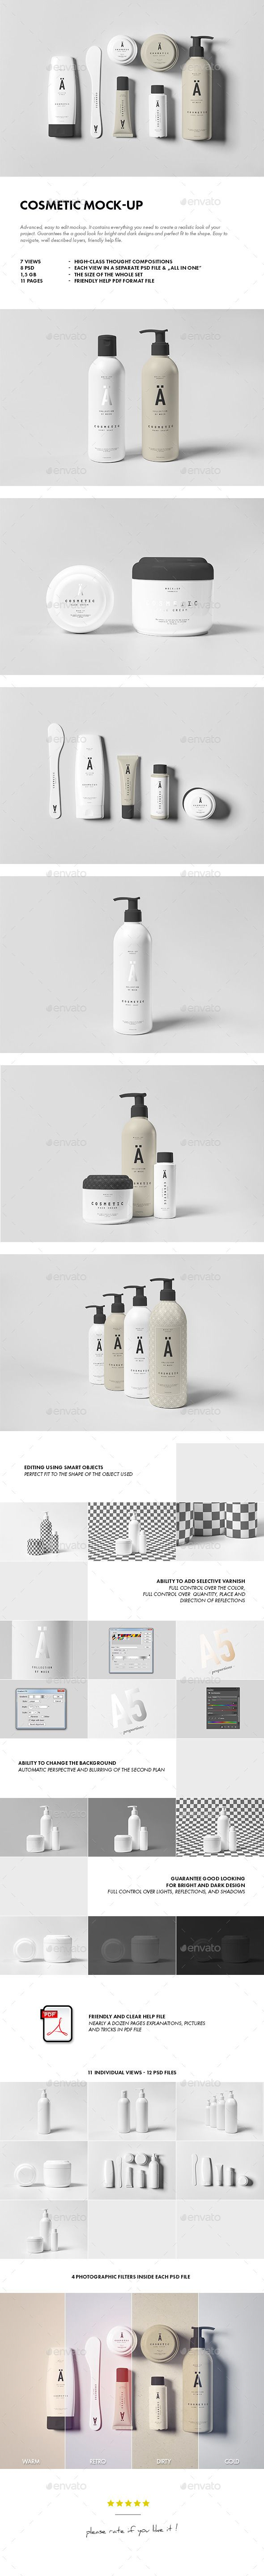 Cosmetic Mock-up - Beauty Packaging #psd #mockup #cosmetics #packaging #beauty #makeup #retail